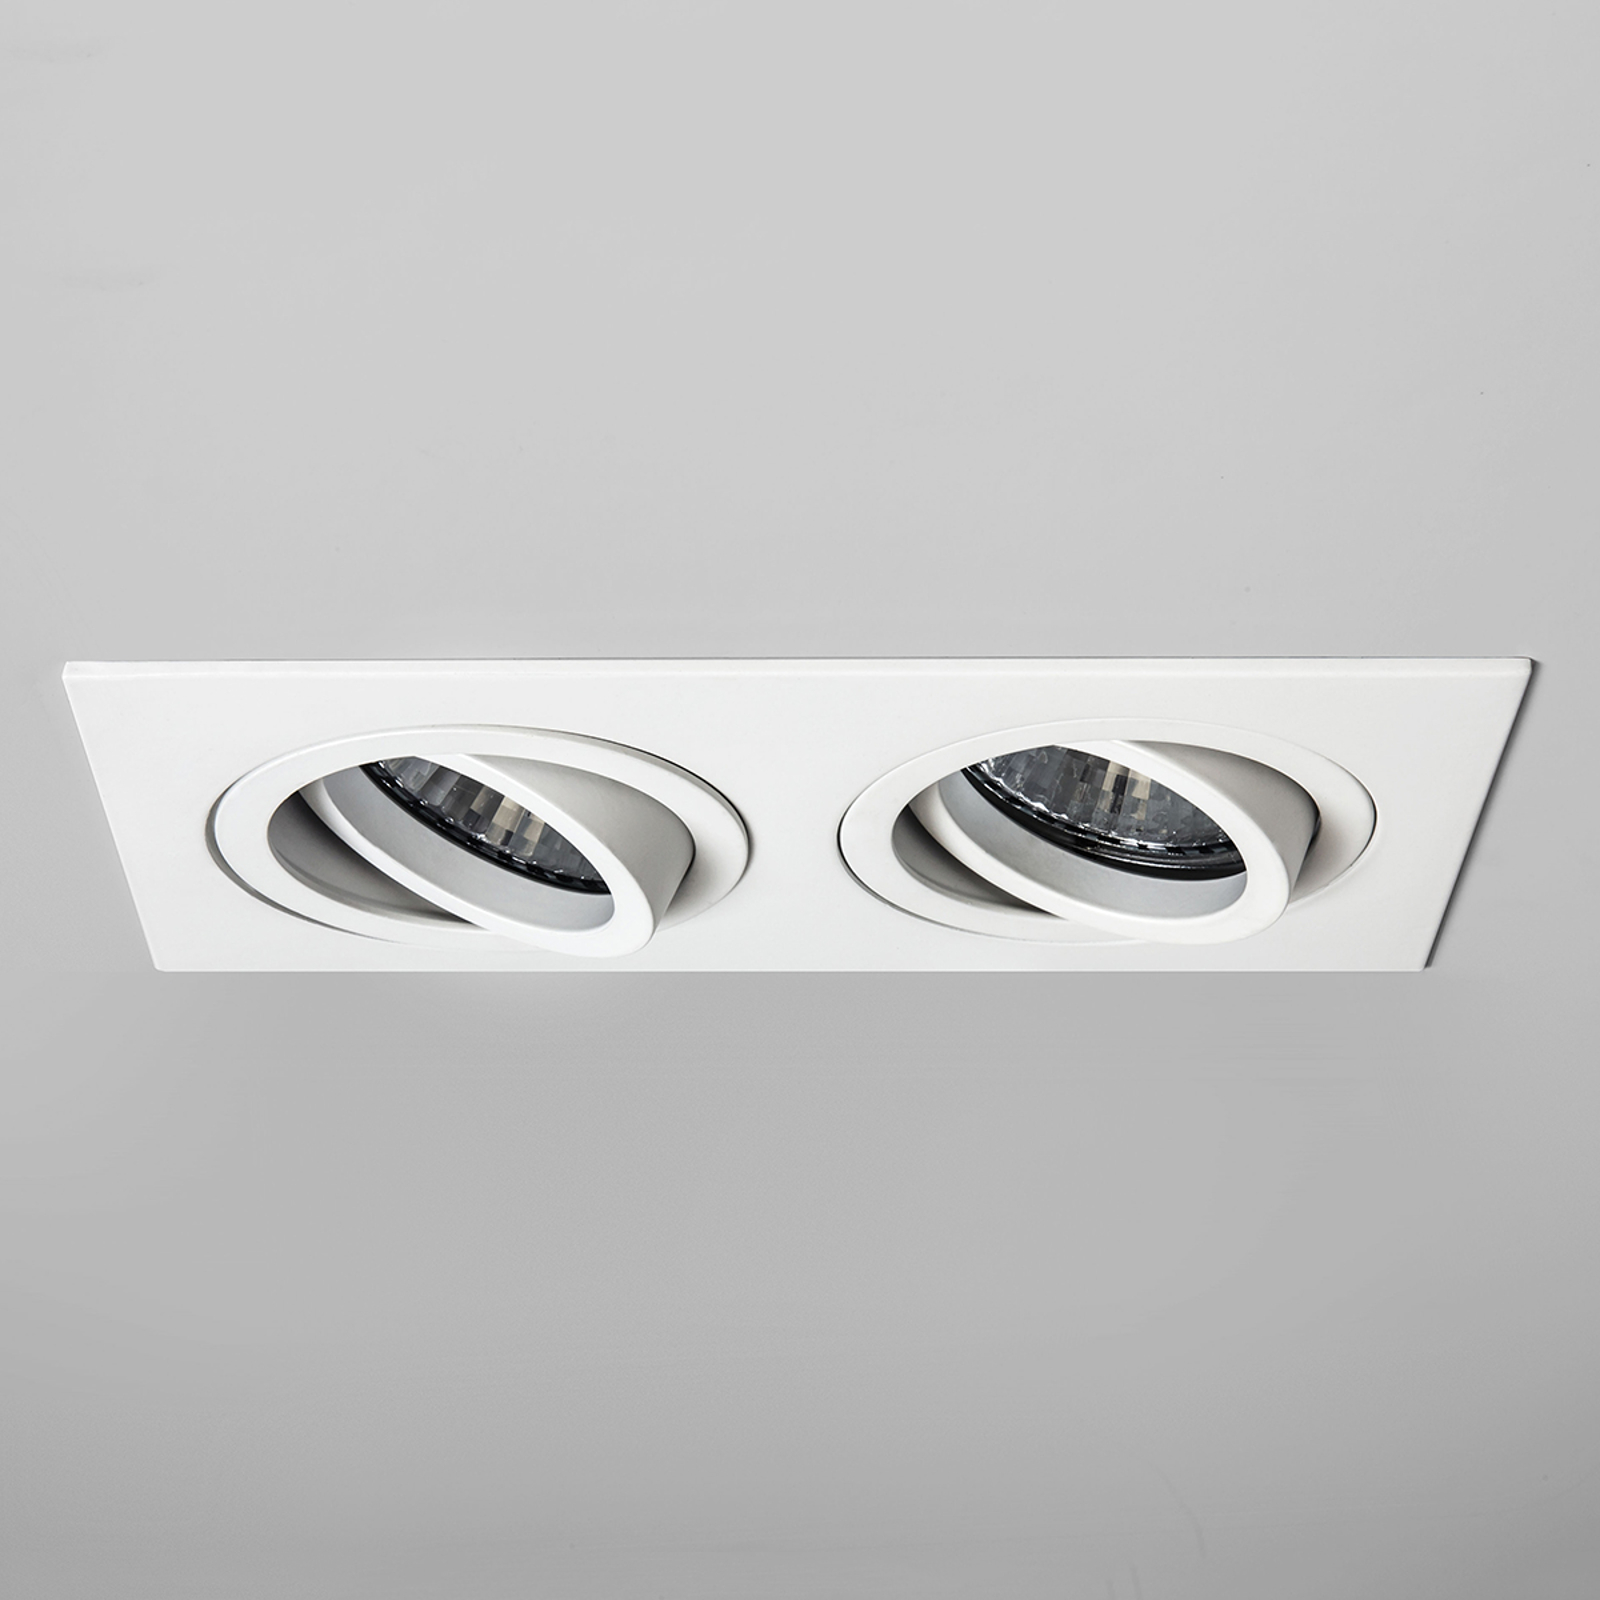 TARO TWIN downlight i hvid